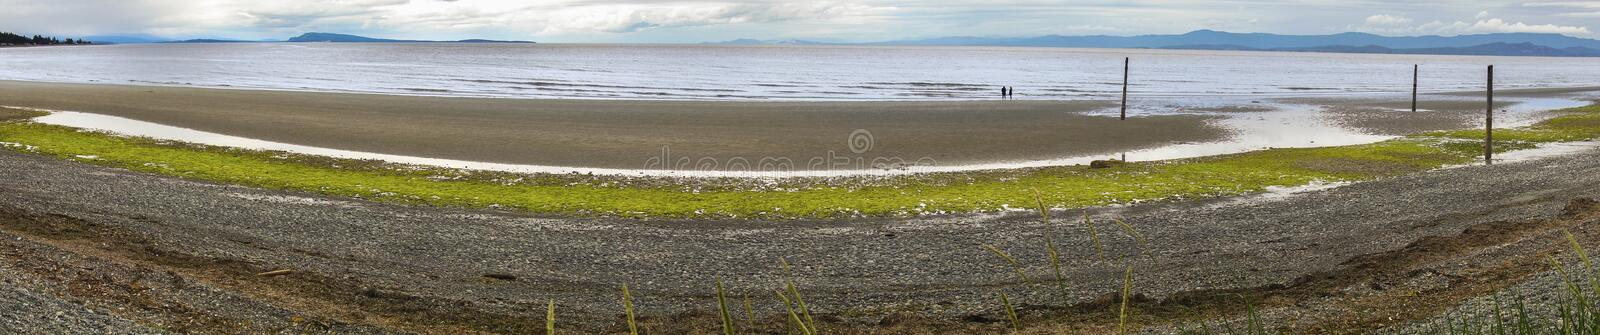 Qualicum Beach Waterfront Vancouver Island BC Canada. Wide Panoramic Landscape of Georgia Strait Coastline in Qualicum Beach on Vancouver Island British Columbia royalty free stock images